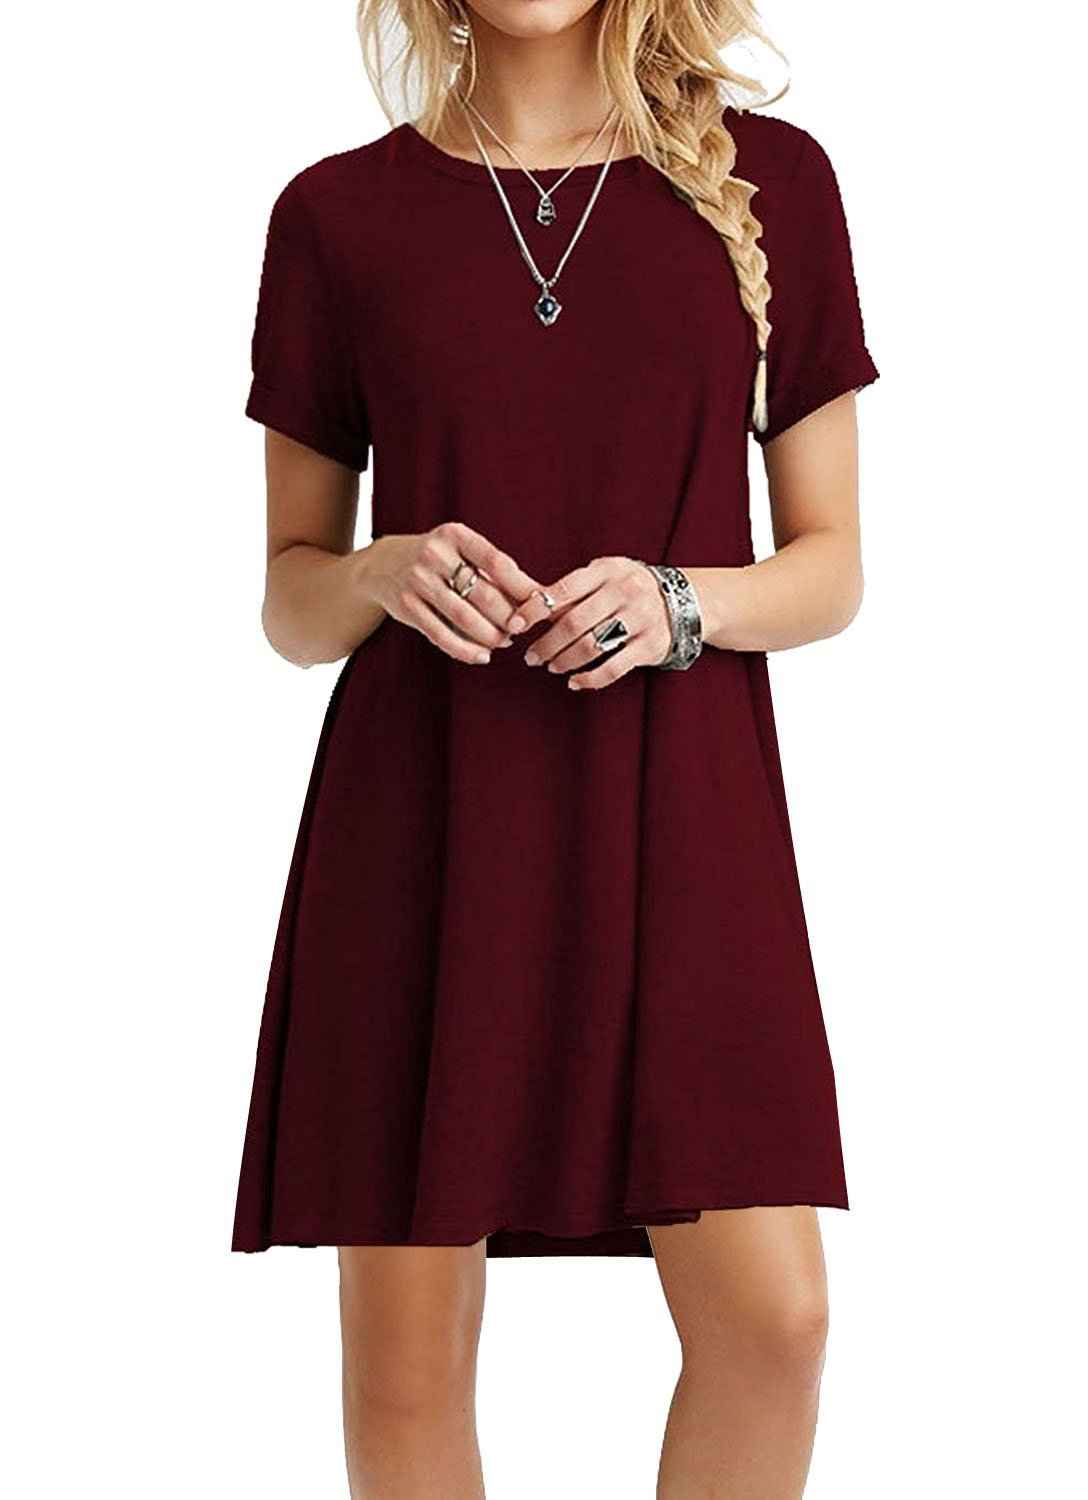 TINYHI Women's Swing Loose Short Sleeve Tshirt Fit Comfy Casual Flowy Tunic Cotton Dress Wine Red,Large